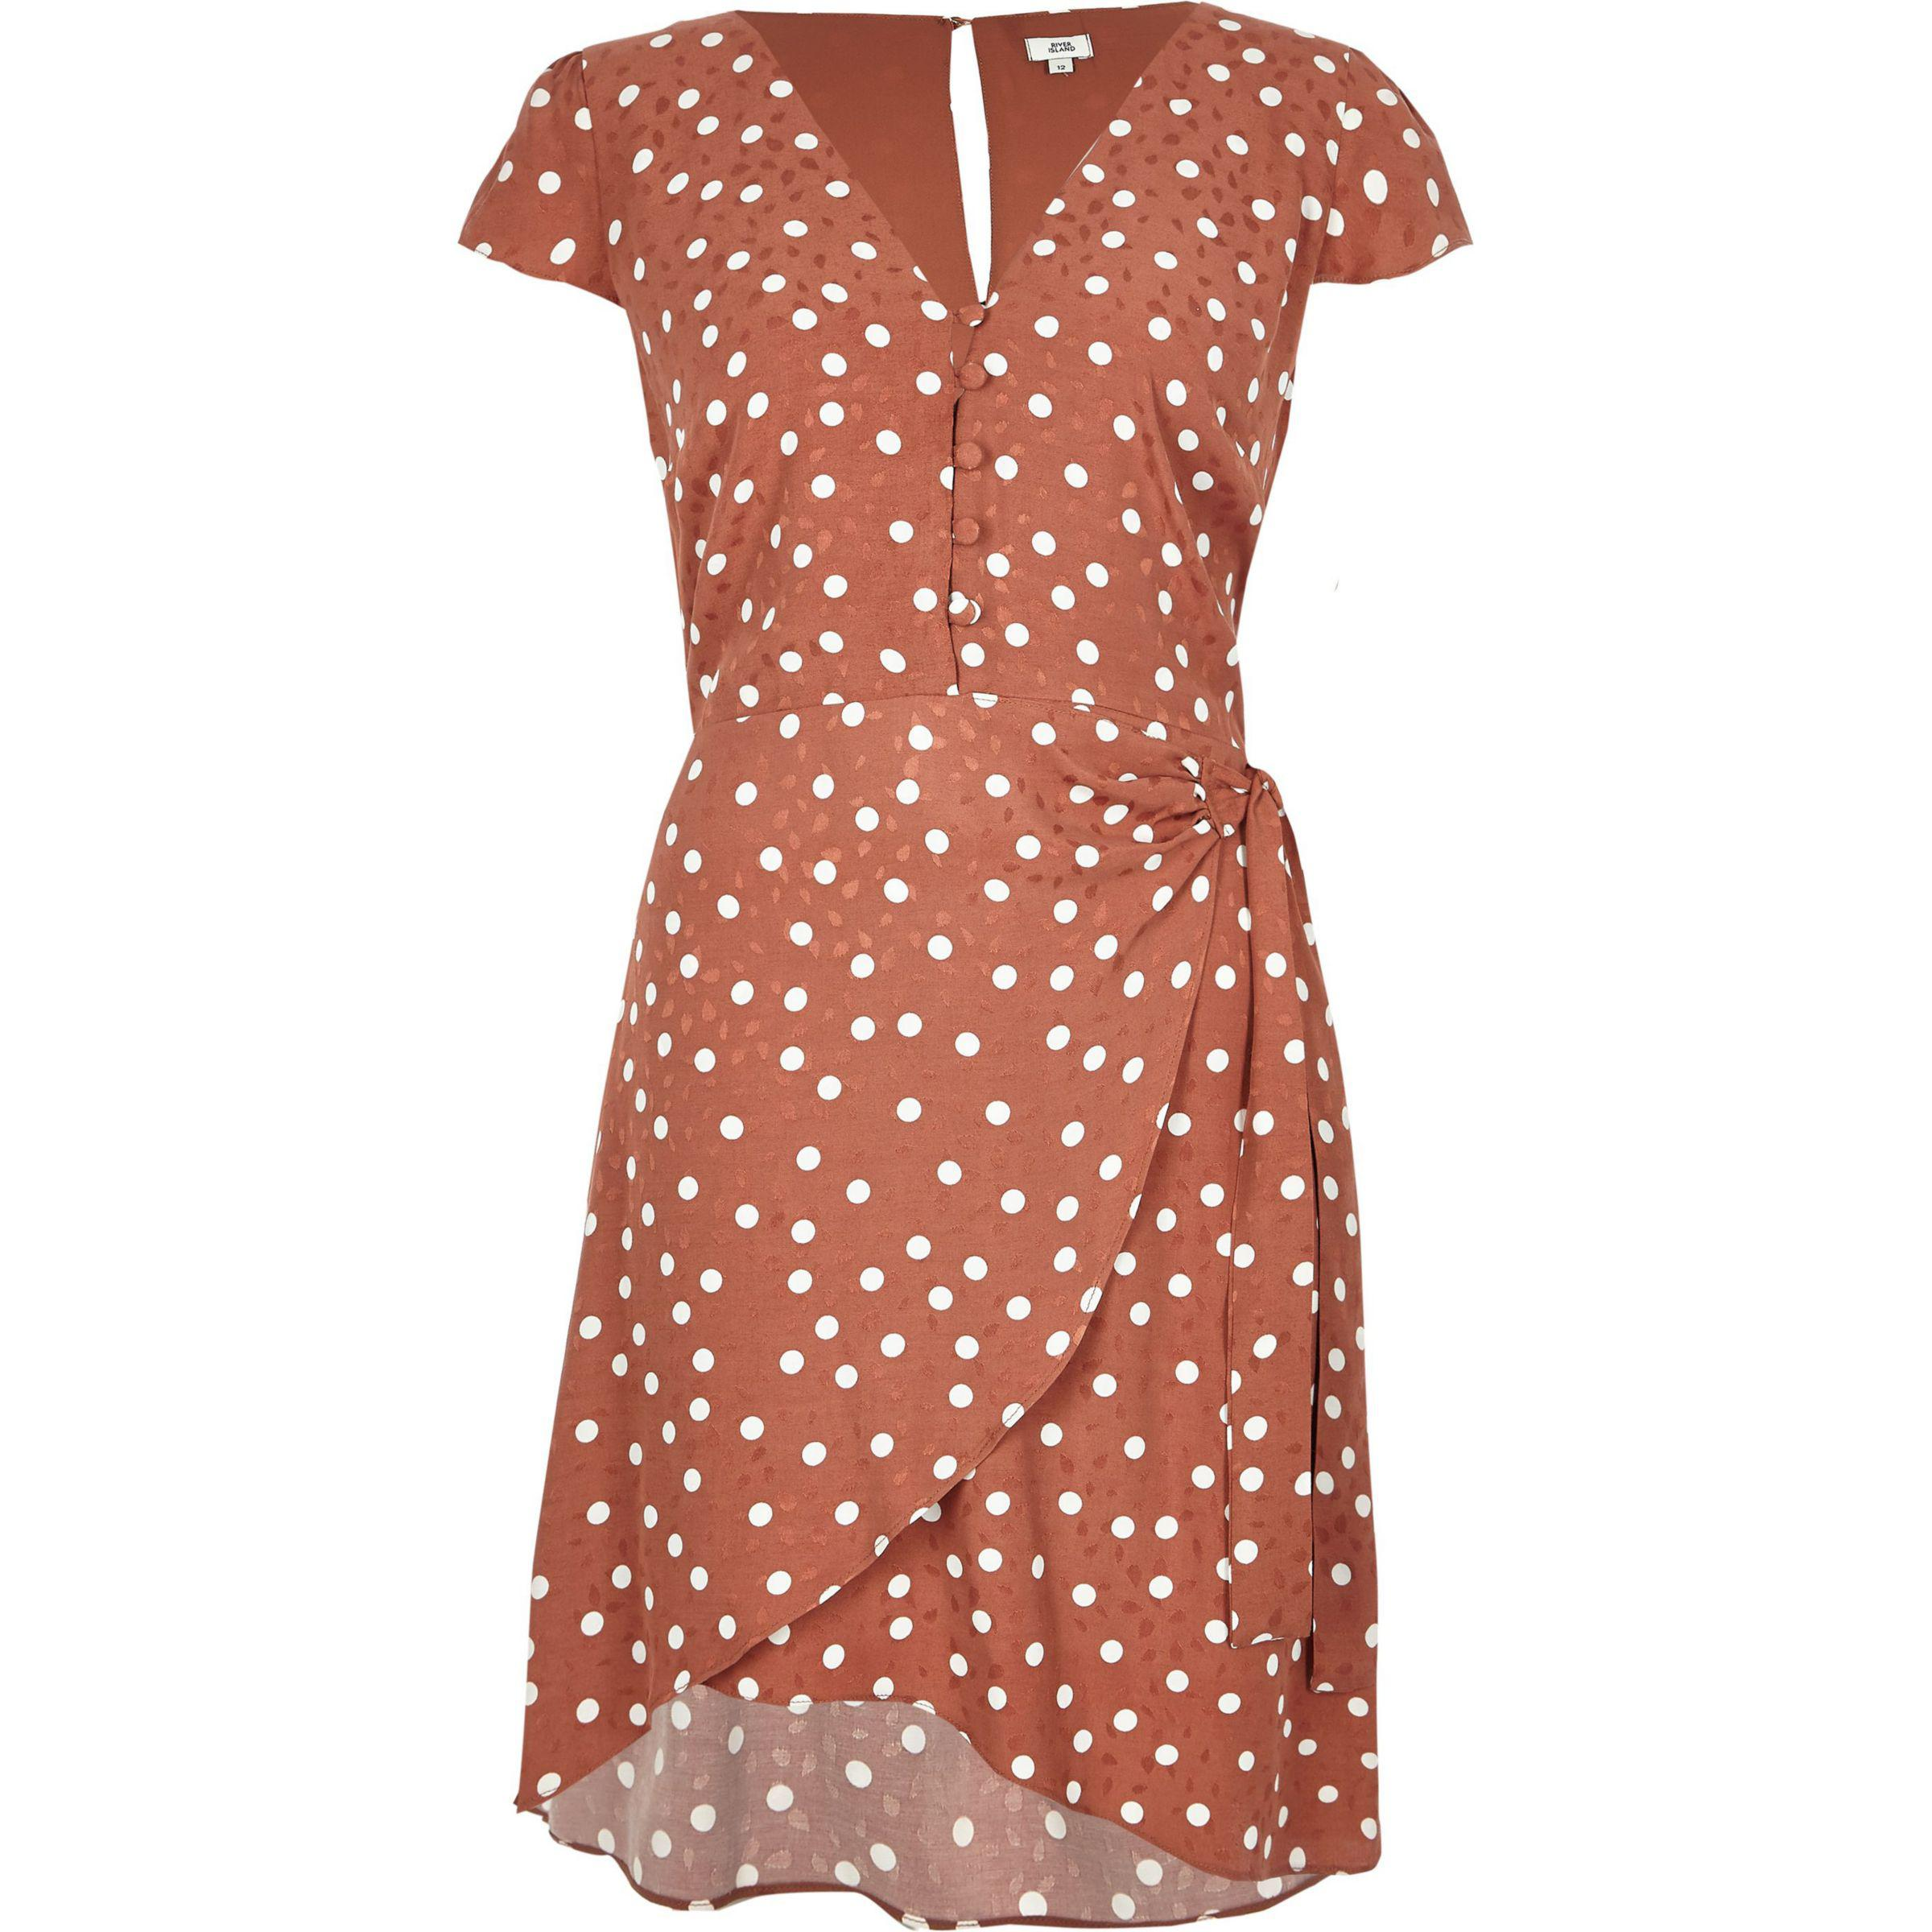 338f3f33ce Lyst - River Island Polka Dot Cap Sleeve Wrap Dress in Brown